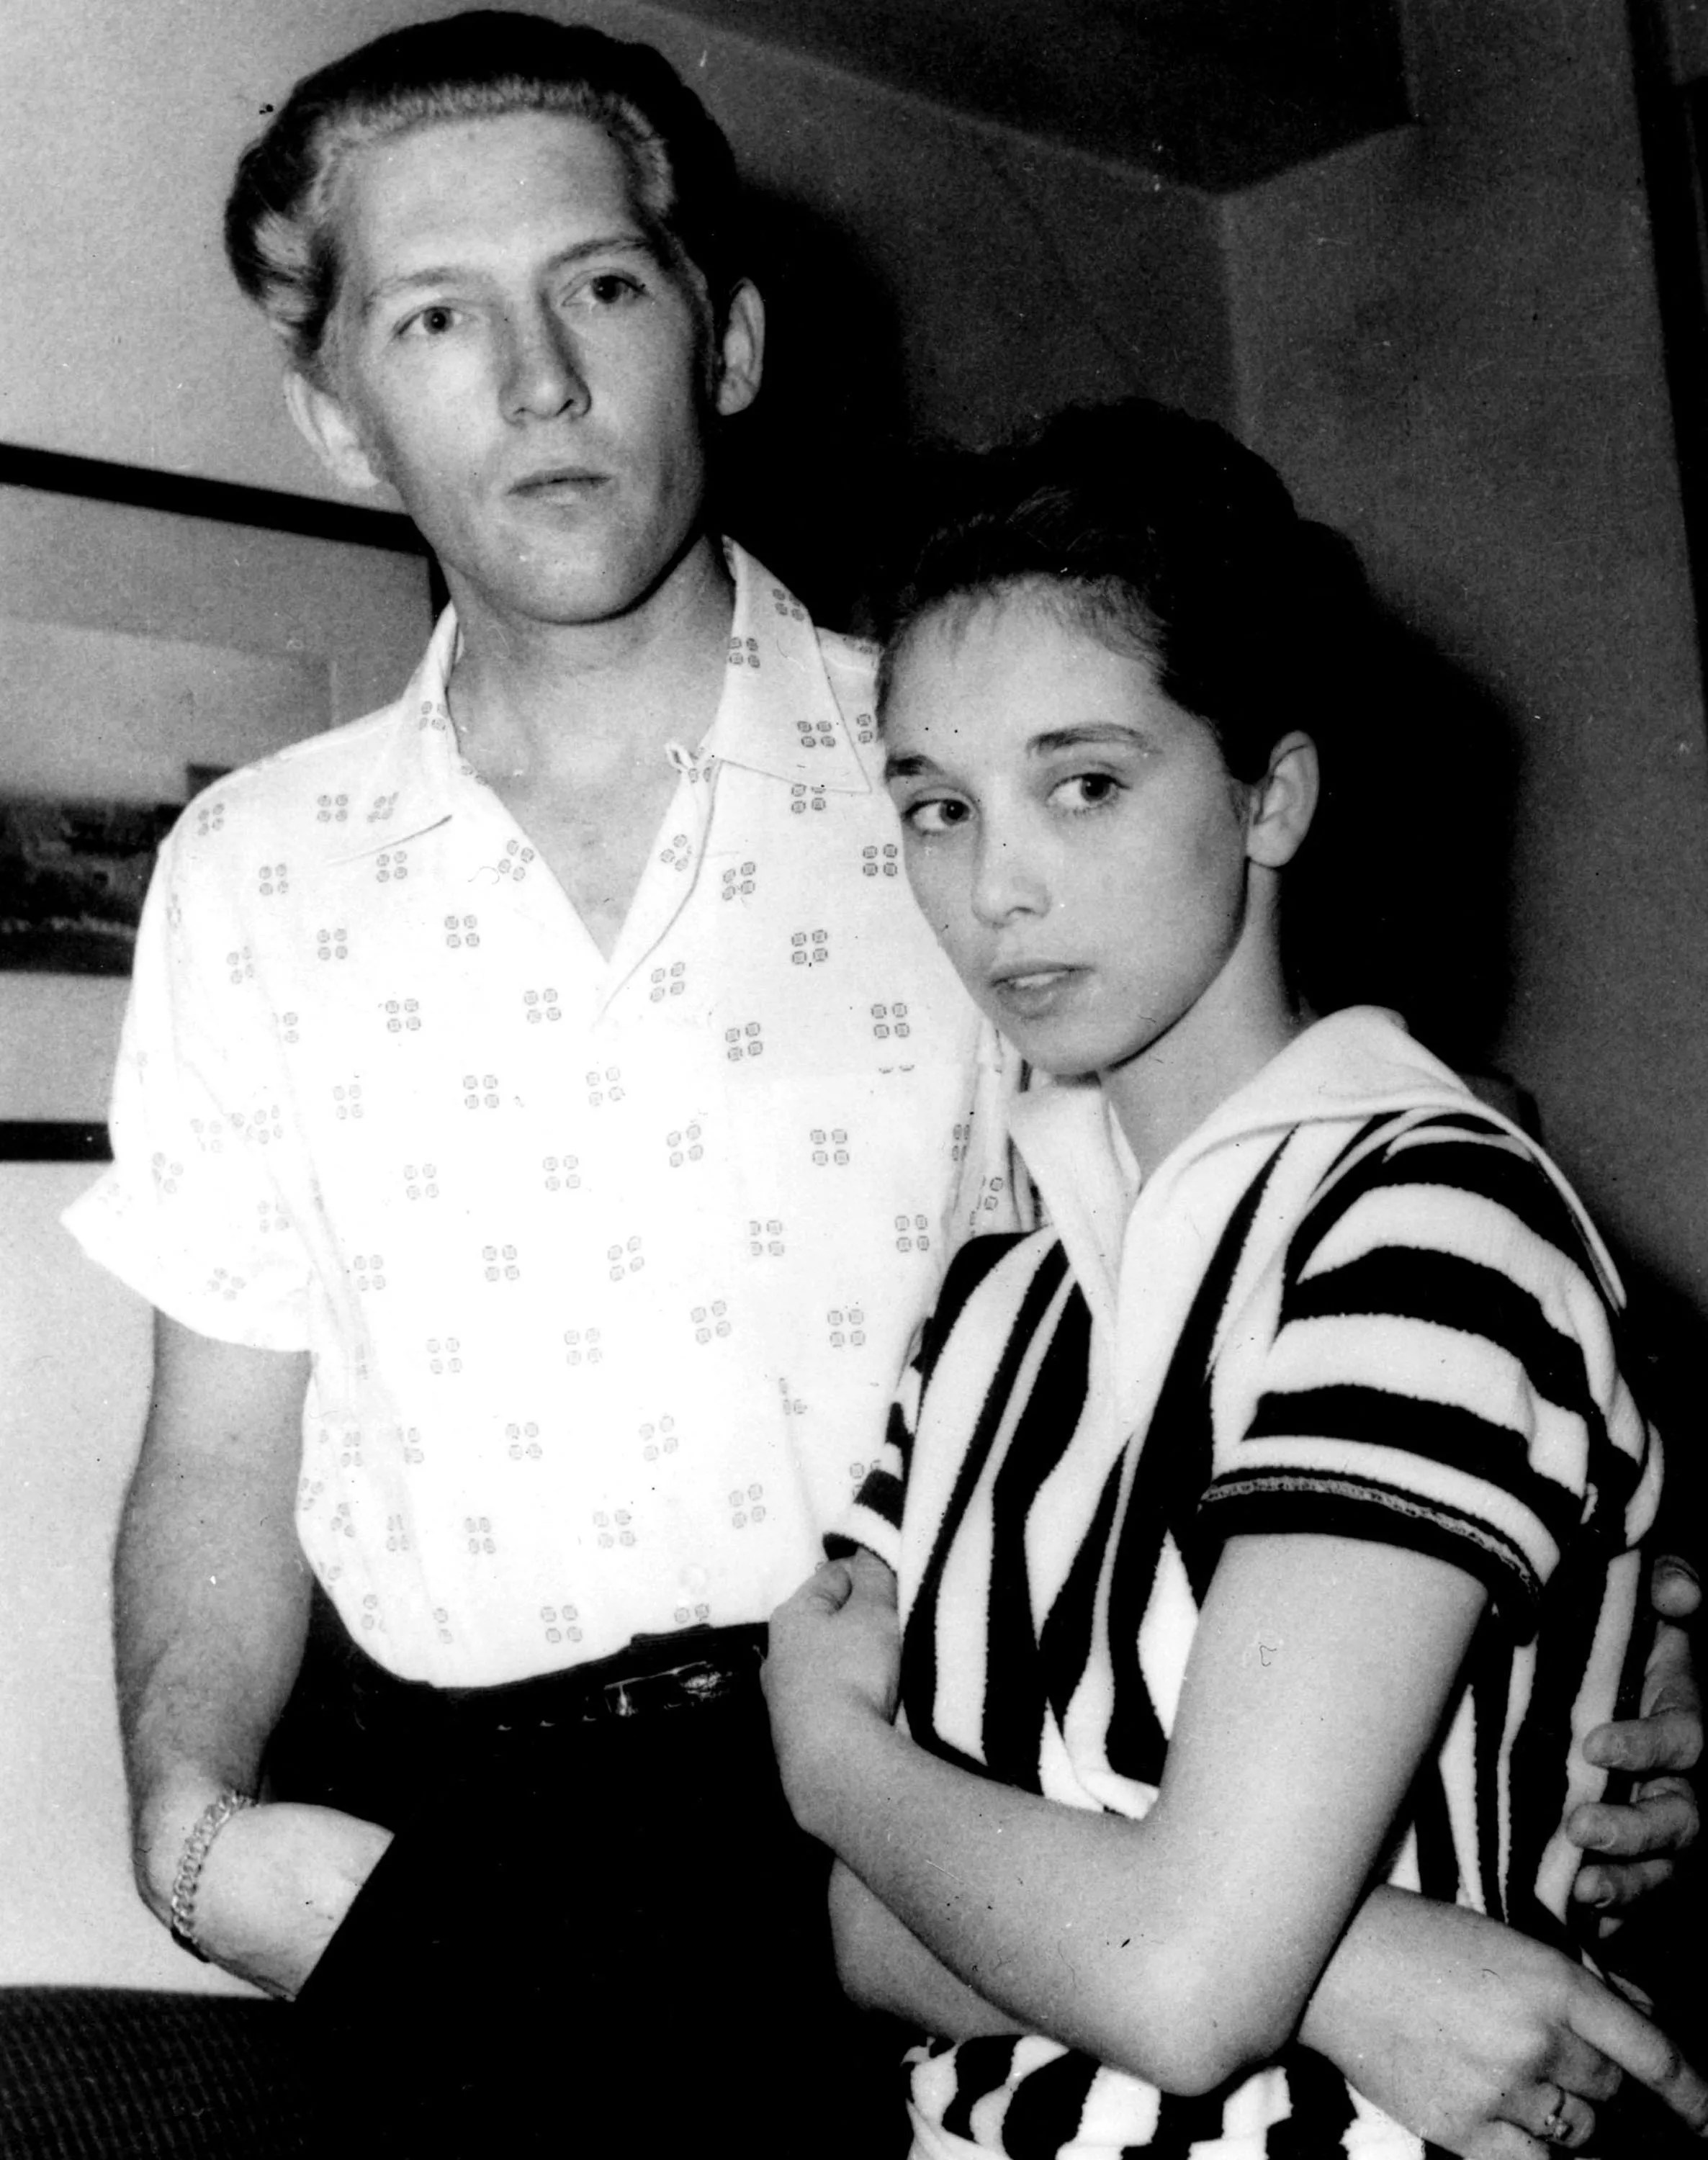 Jerry Lee Lewis x chuck berry